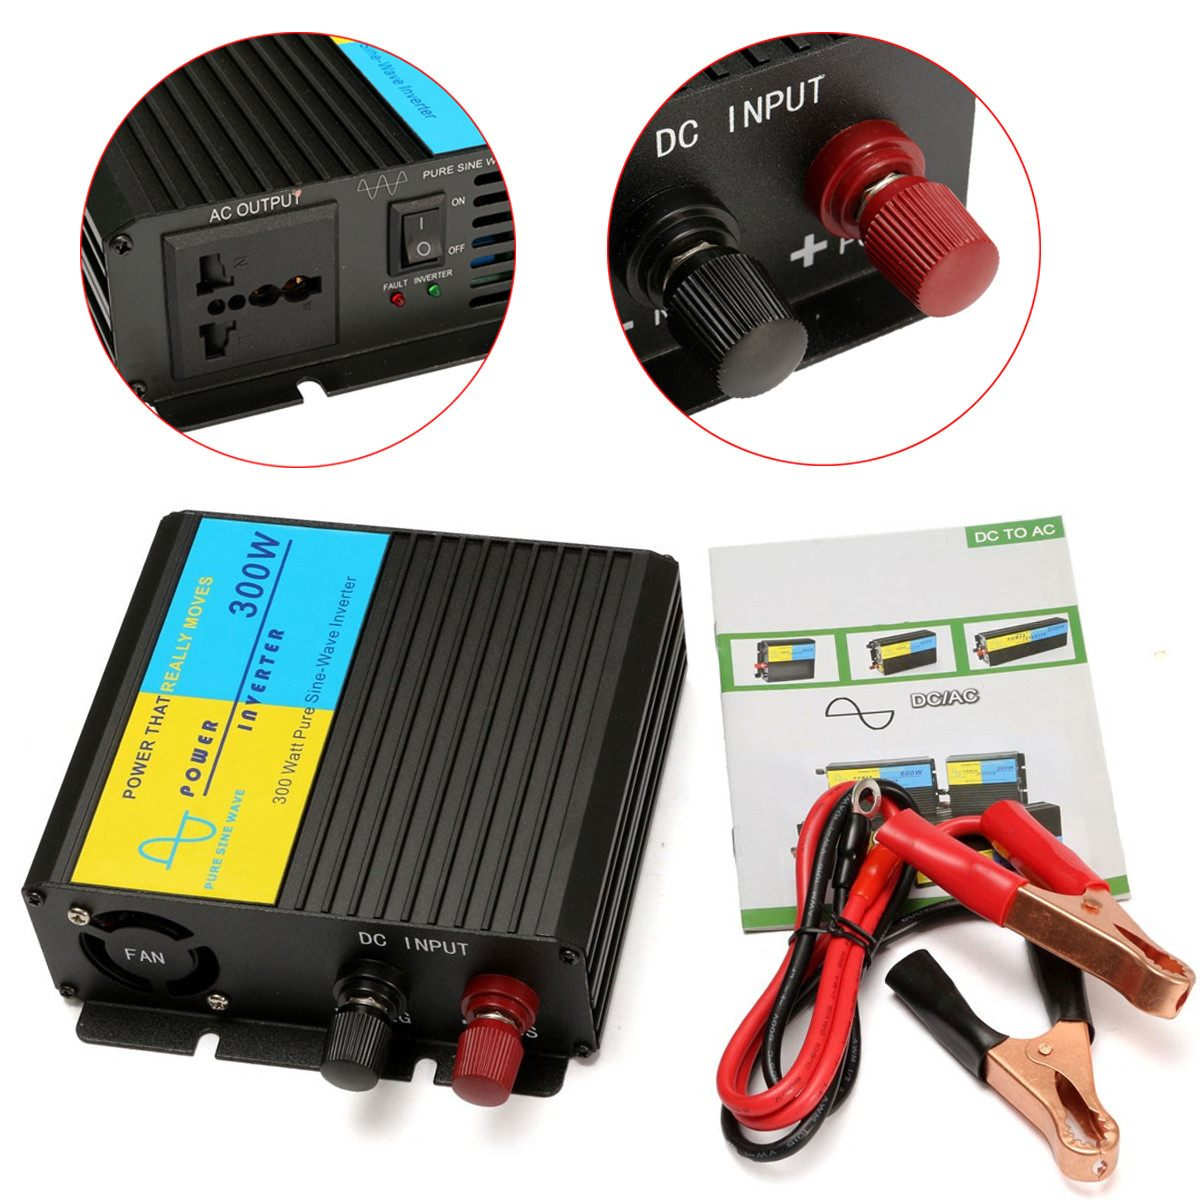 1Pcs Black 300W Power Inverter Converter DC 12V to 220V AC Cars Inverter with Car Adapter1Pcs Black 300W Power Inverter Converter DC 12V to 220V AC Cars Inverter with Car Adapter